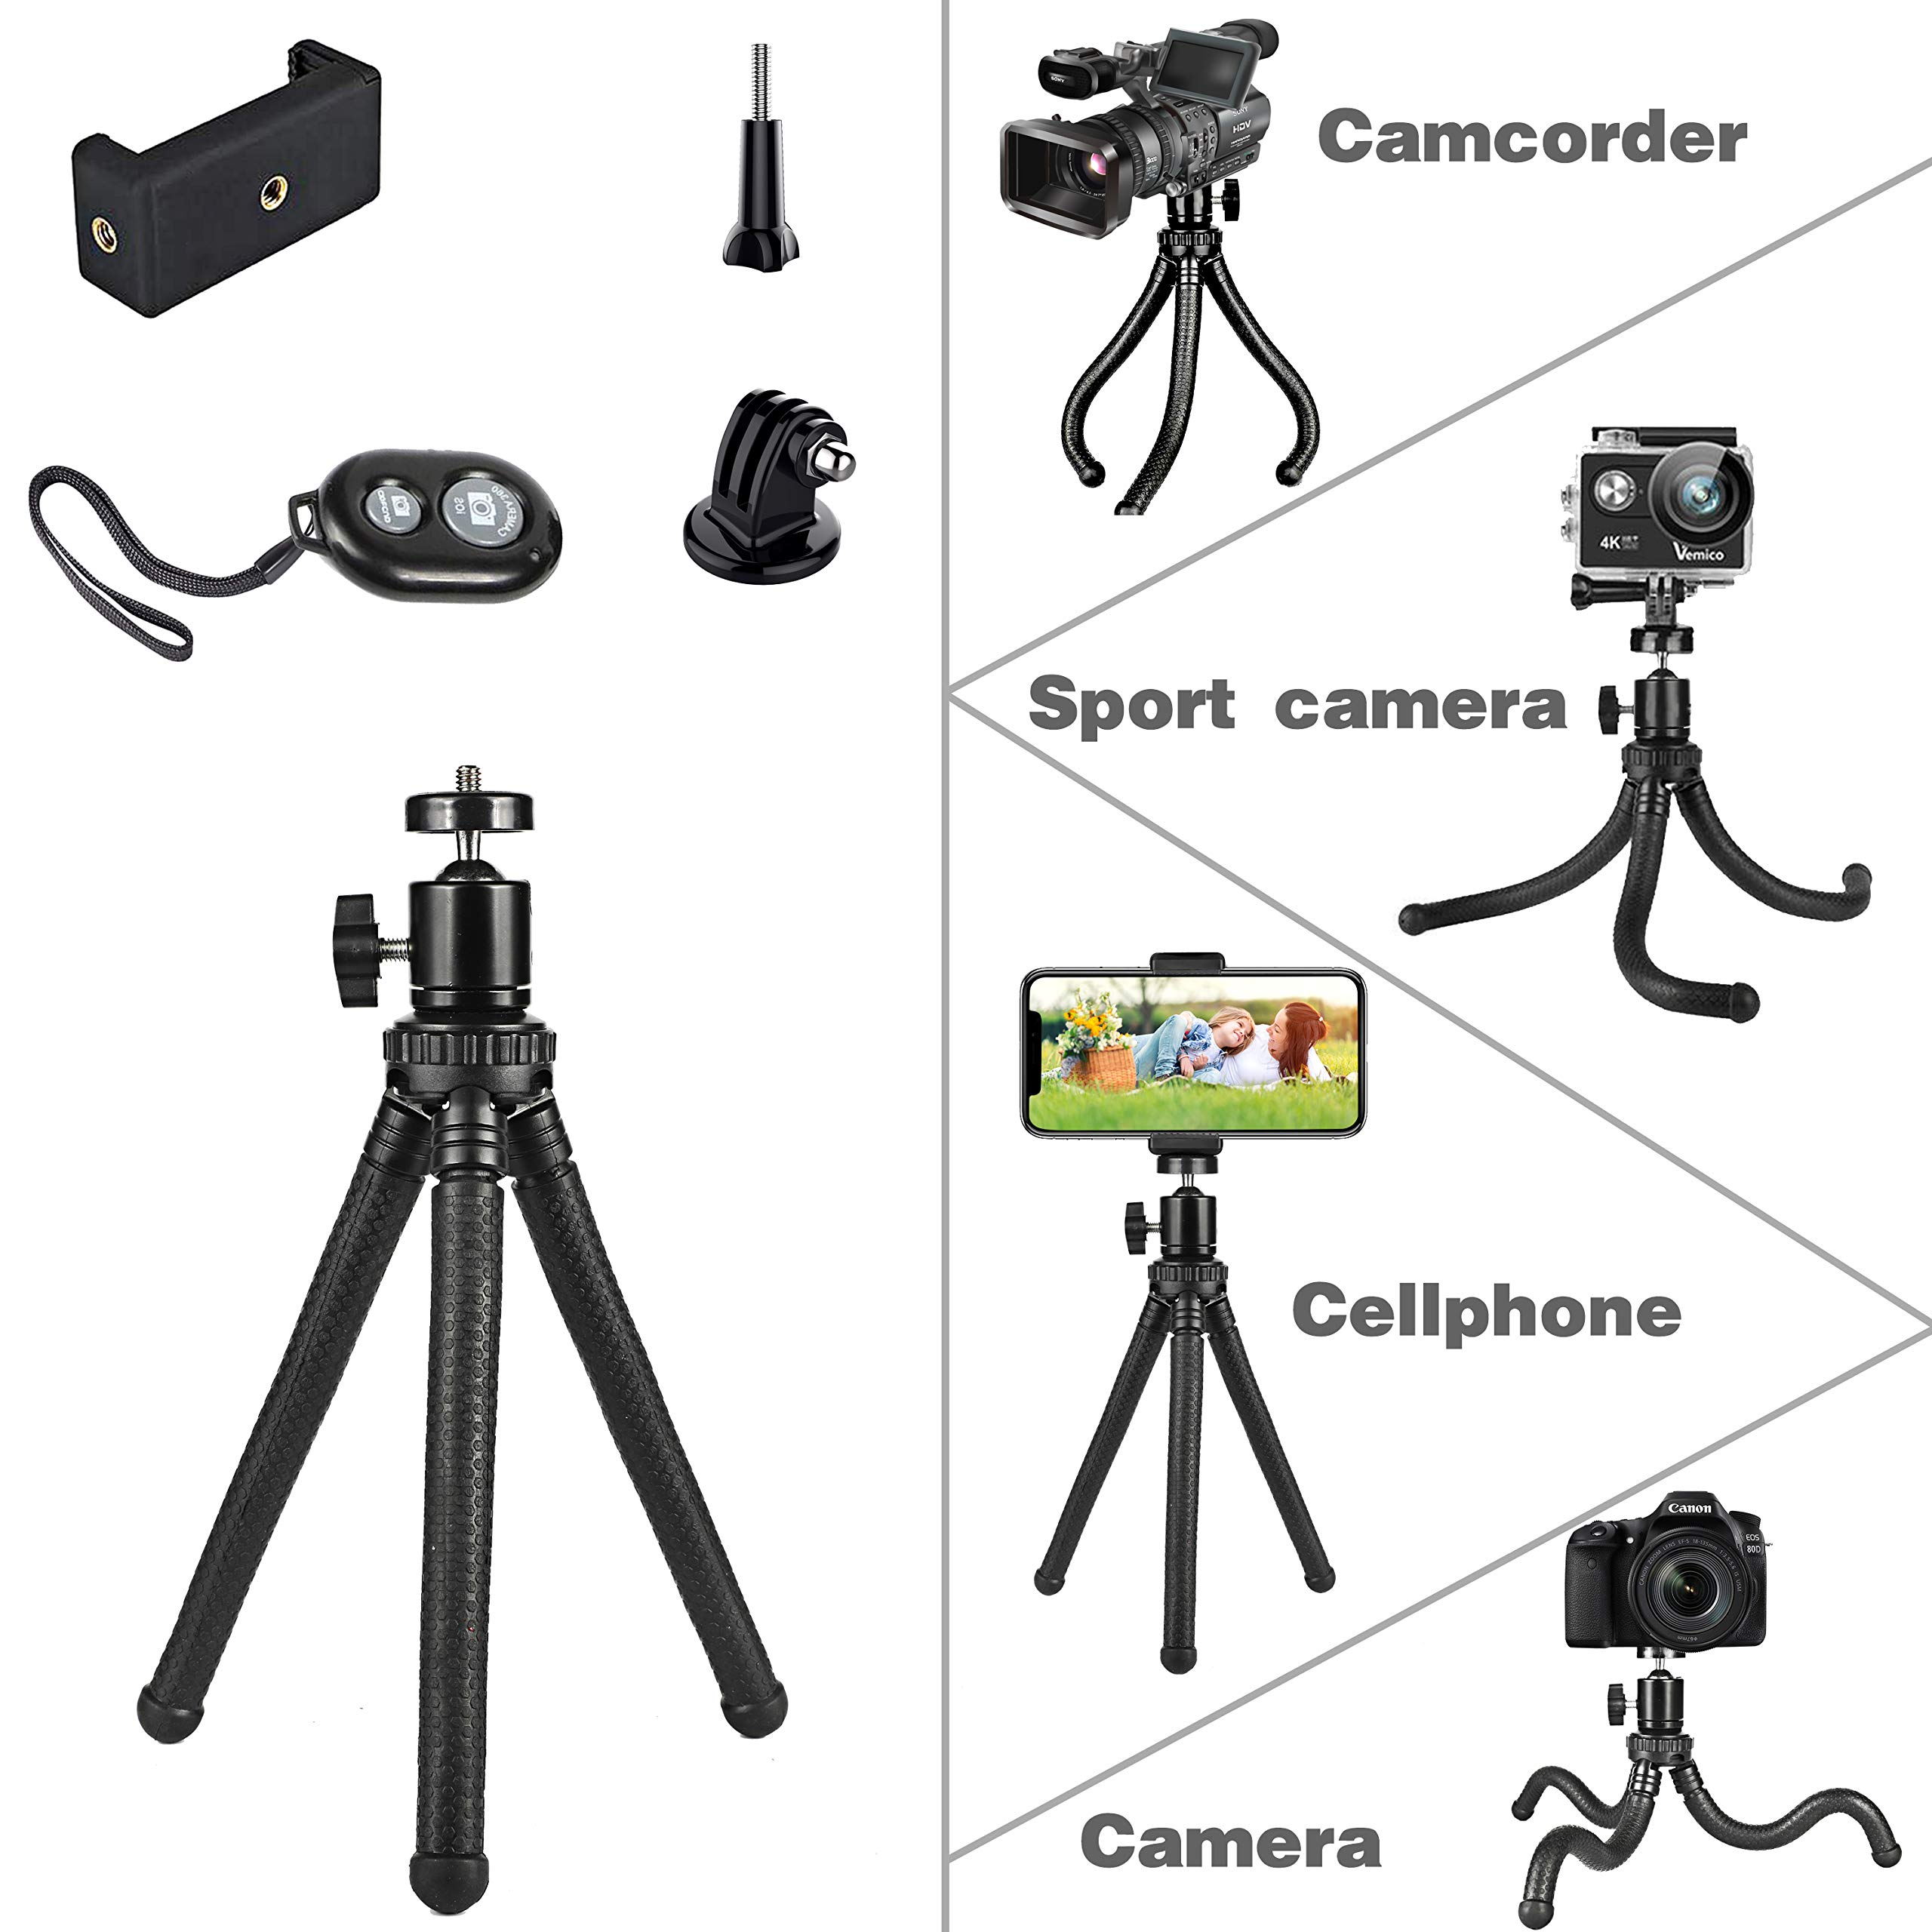 Details about Flexible Phone Tripod, Adjustable Anti-Crack Camera Tripod  with Wireless Remote